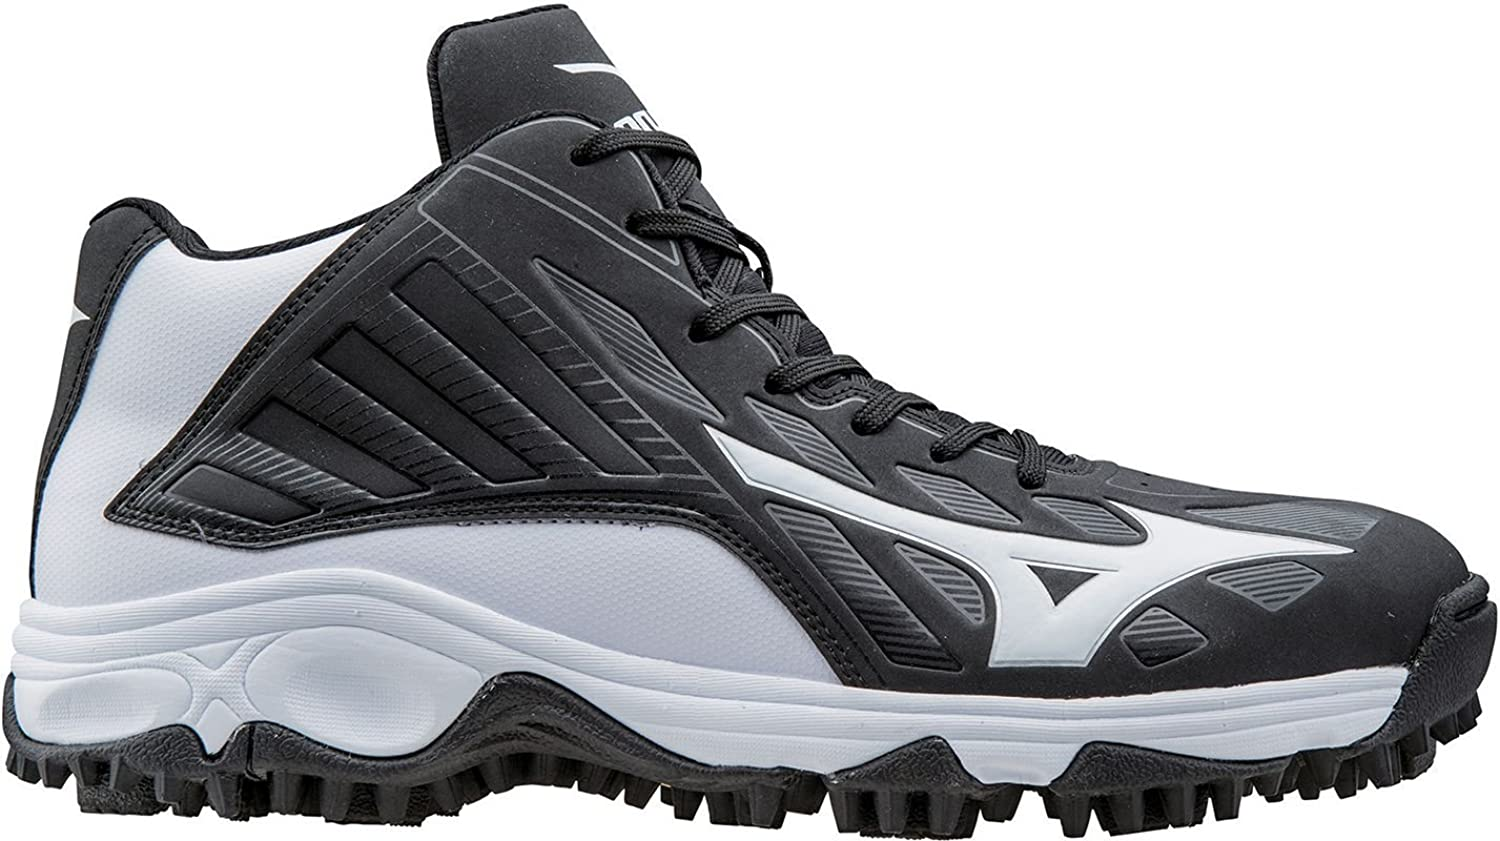 ミズノ スポーツ 野球 シューズ Mizuno Men's 9 Spike Advanced Erupt 3 Mi BlackWhite [並行輸入品] B073ZDCYQY 10